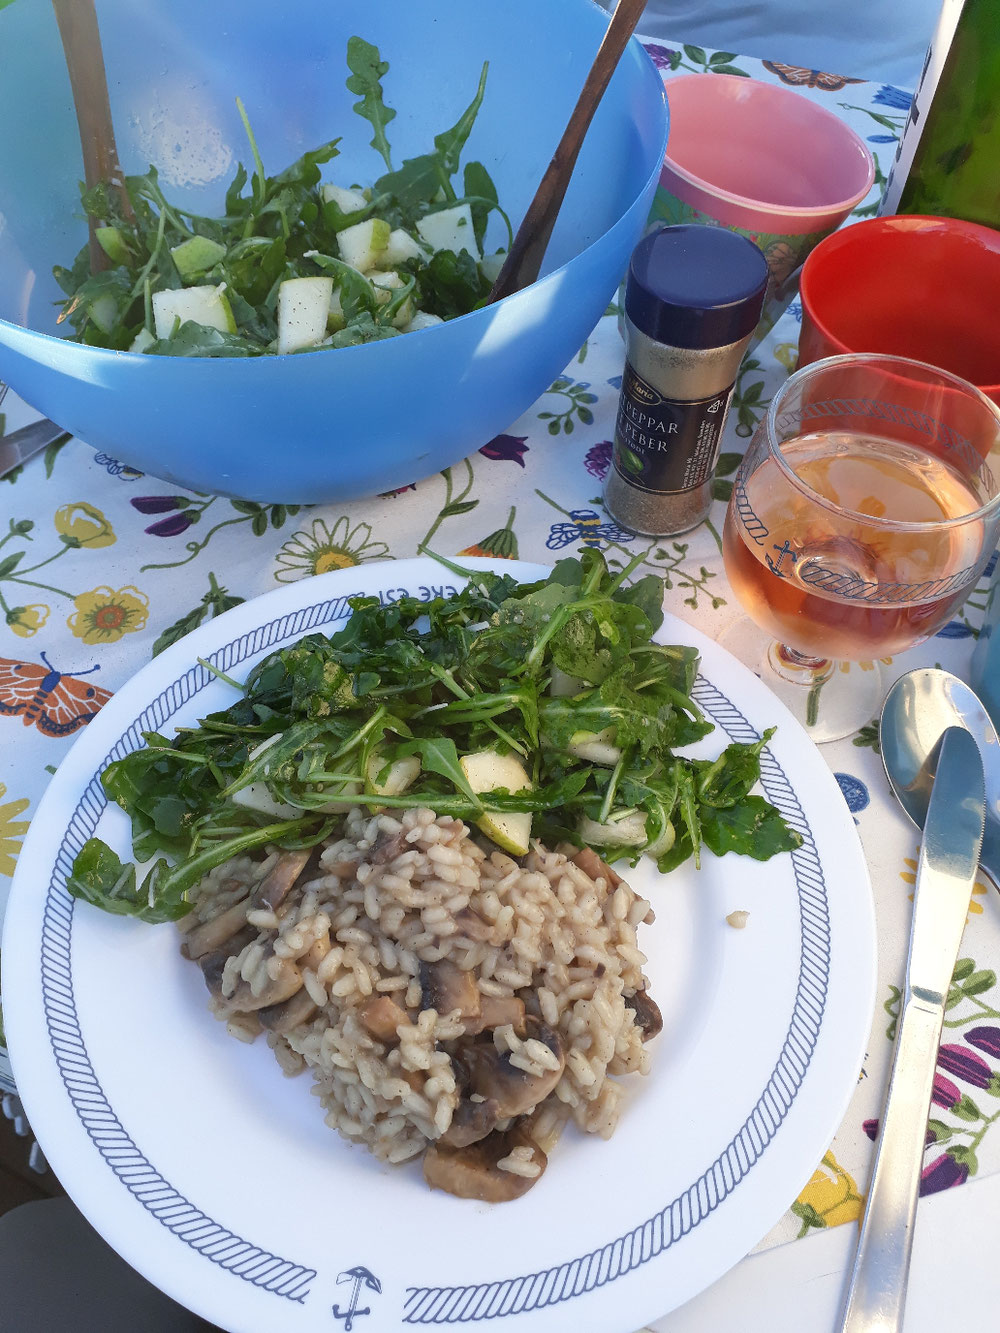 Mushroom risotto with ruccola - thanks Anna!